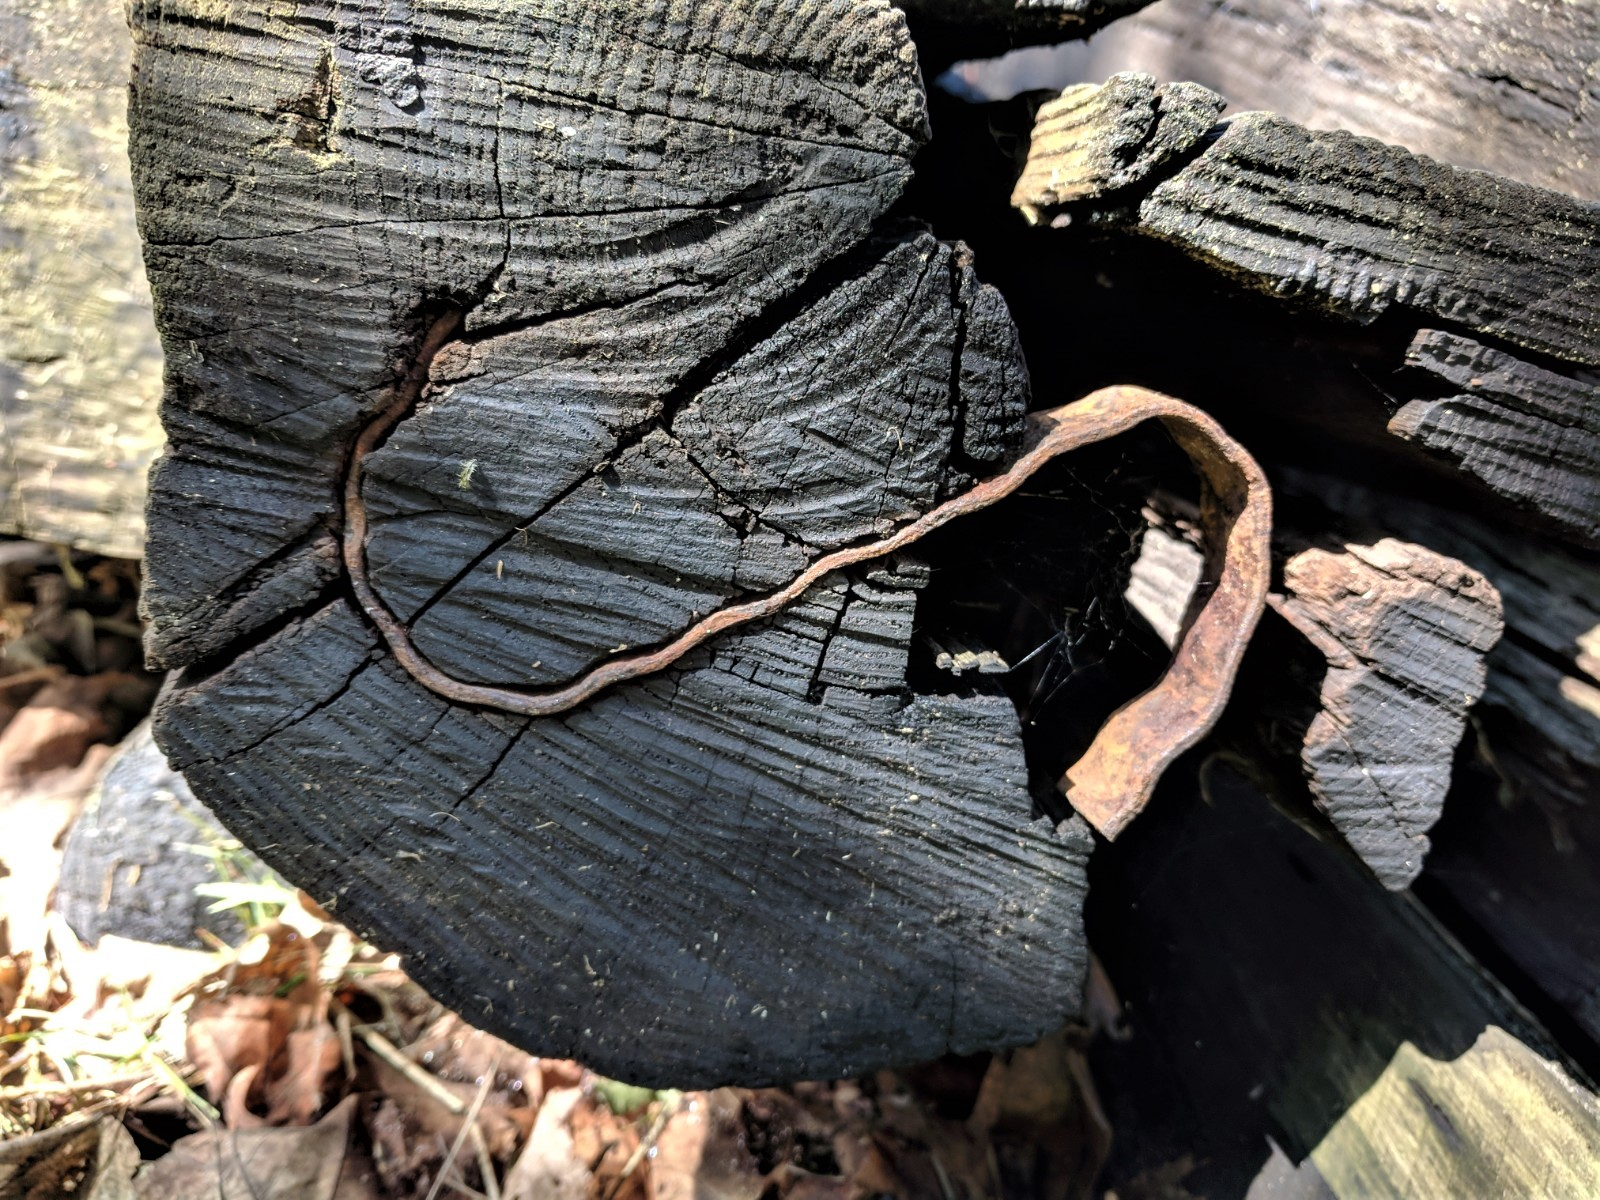 S Shaped Metal On Railroad Tie Ends Railroadforums Com Railroad Discussion Forum And Photo Gallery